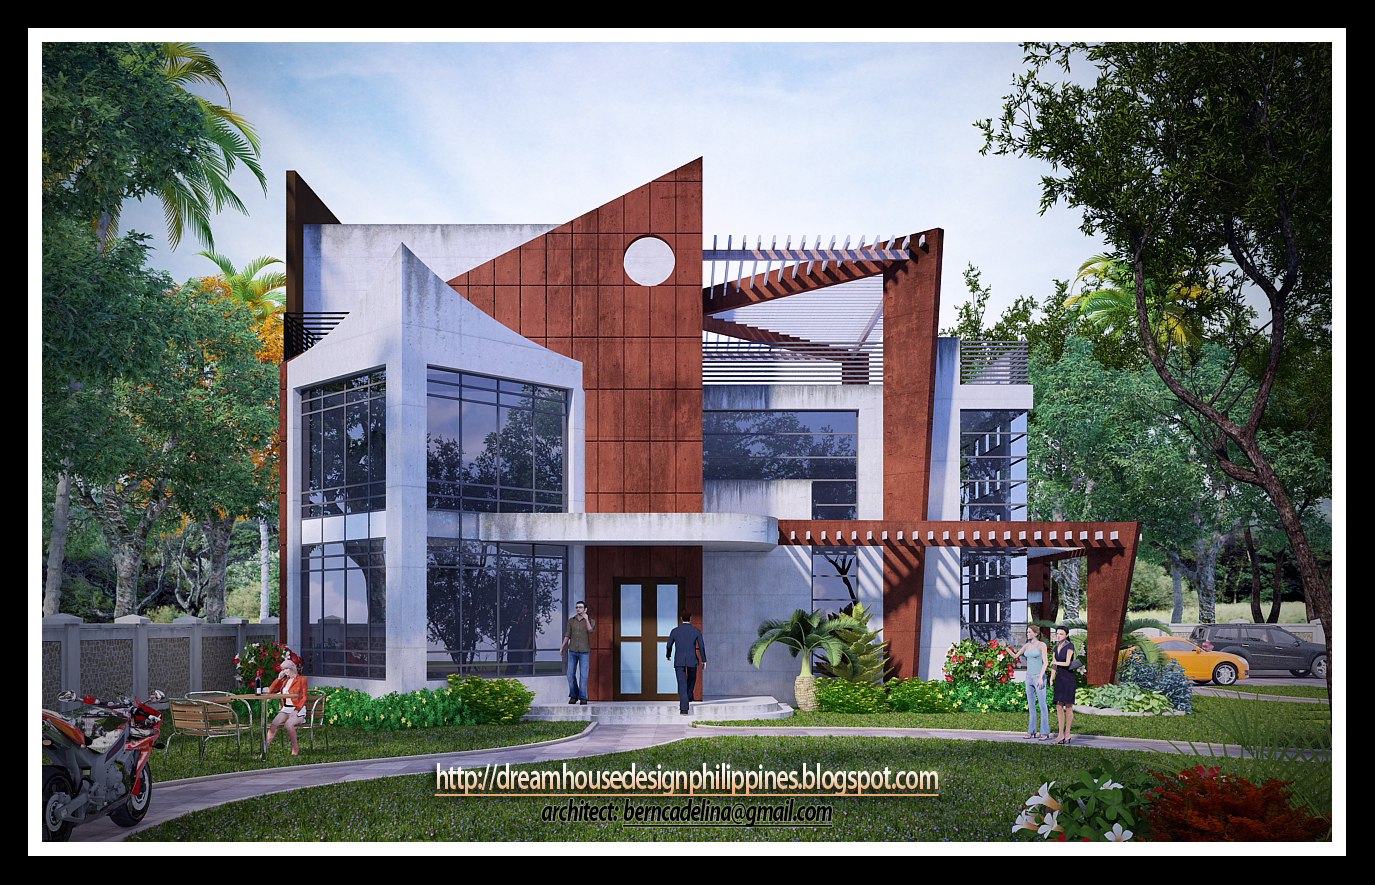 House designs philippines architect bill house plans for Modern house designs philippines